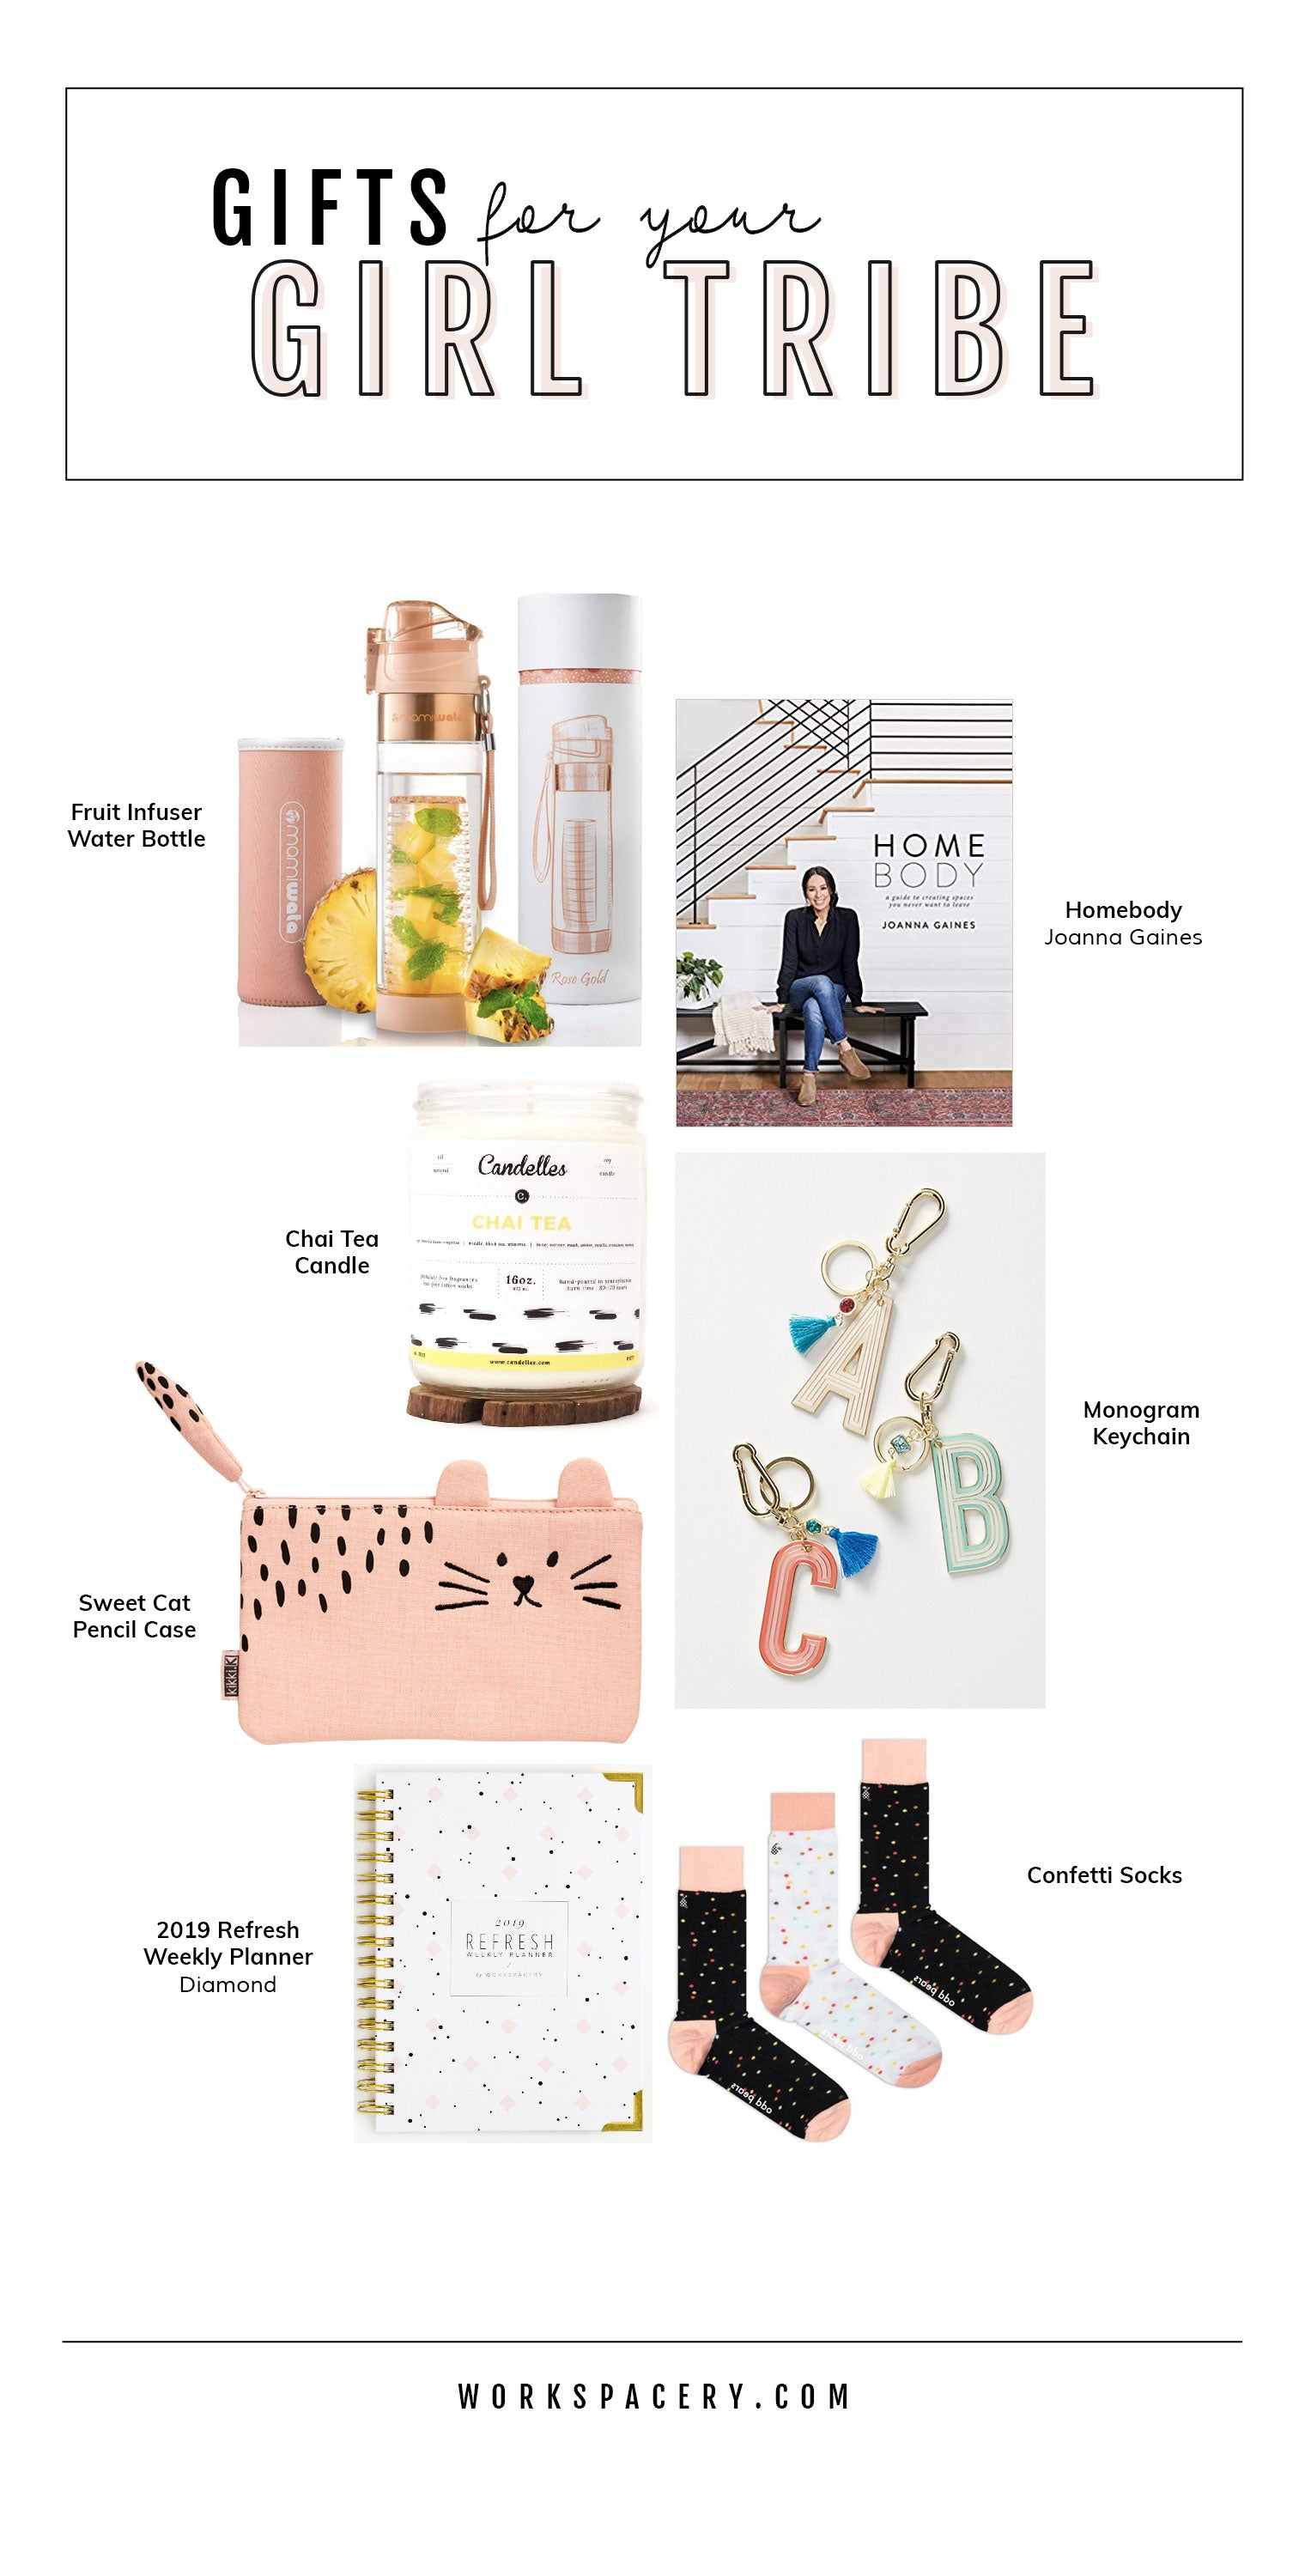 Workspacery Gift Guide for Your Girl Tribe